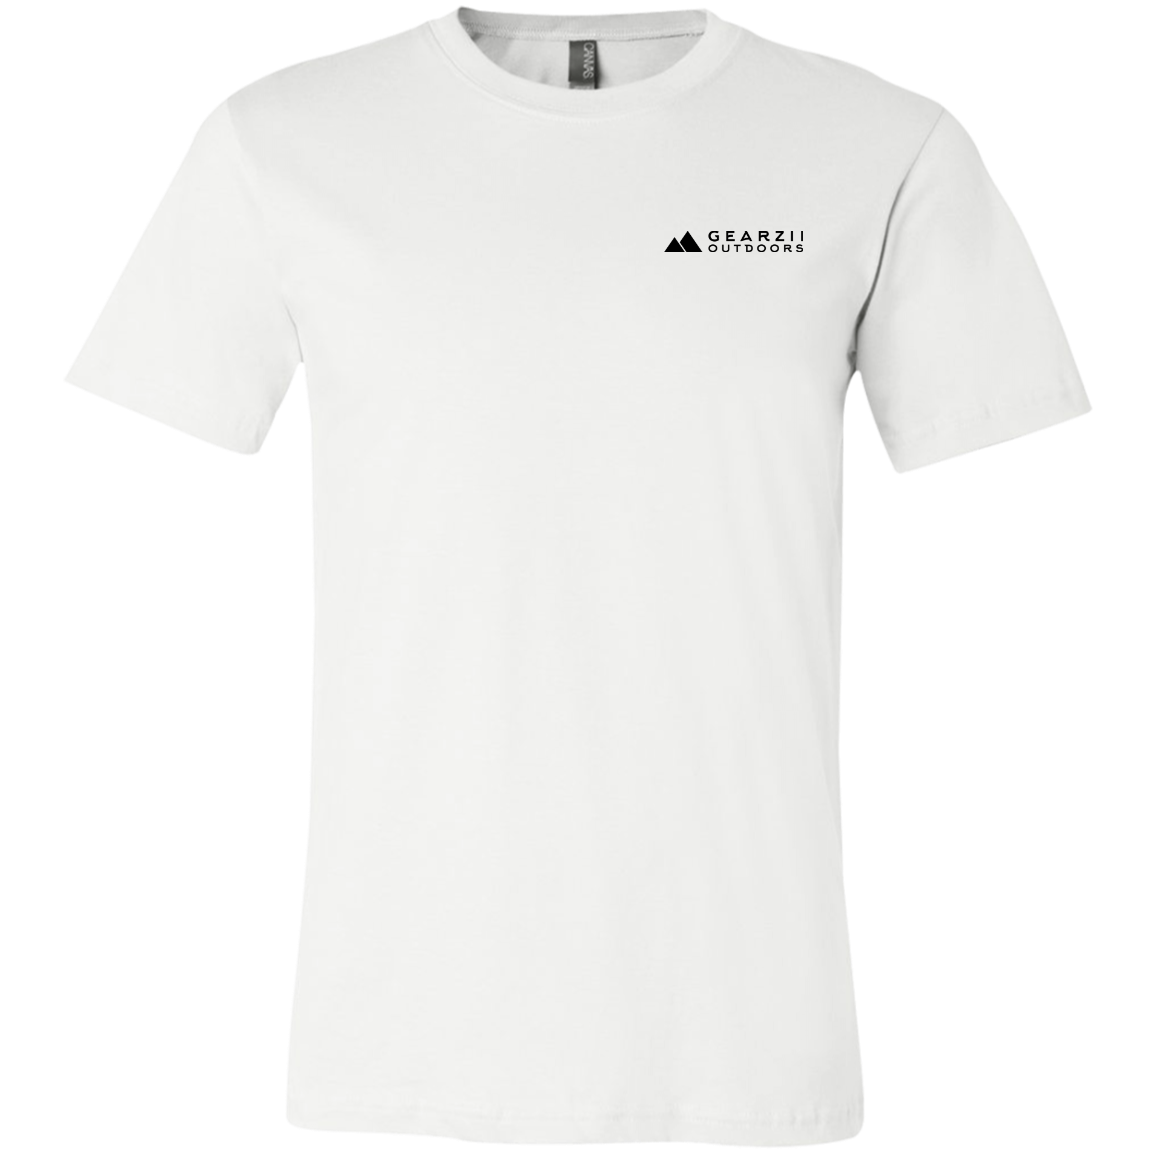 Gearzii – Unisex Short-Sleeve T-Shirt